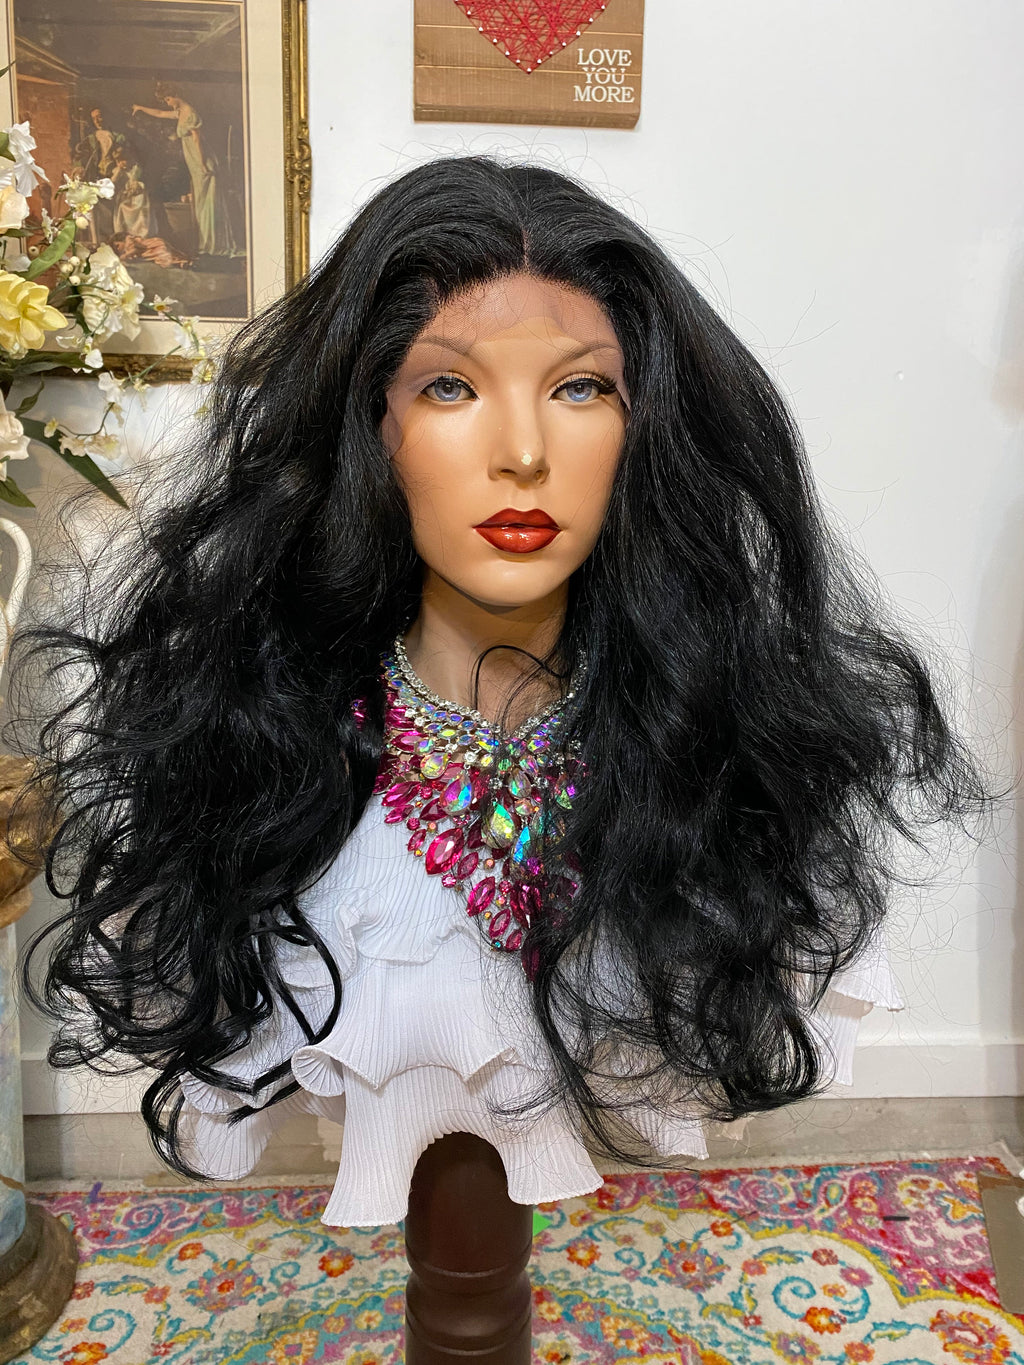 "ANASTASIA Jet Black #1 Silk Base Lace 4x4 freestyle part HD lace front wig 22"" Undetectable hairline + Lots of Volume and Curls 1-18"